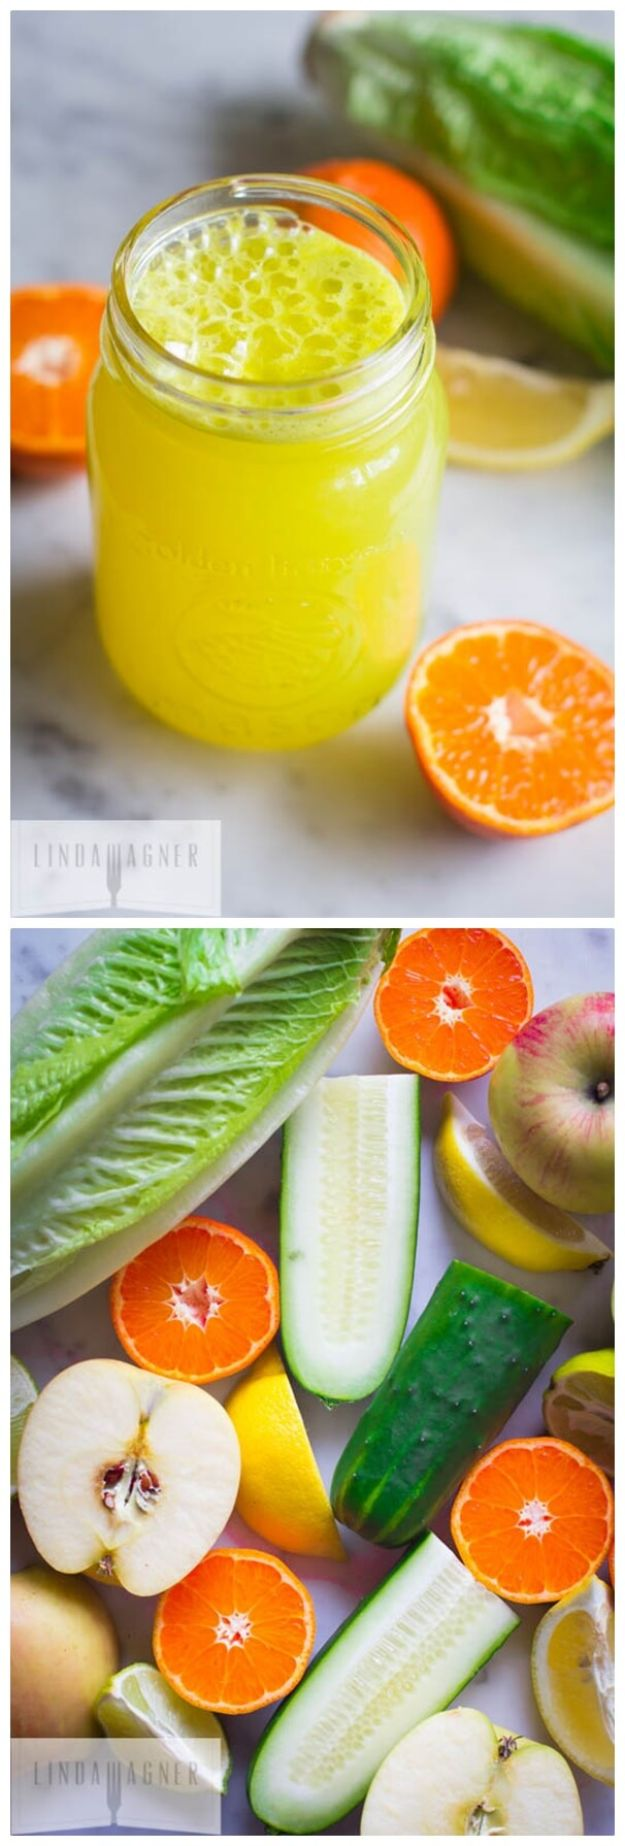 DIY Juice Recipes for Health, Detox and Energy - Belly Buster Green Juice - Juicing for Beginners With Fruit and Vegetables - Recipe Ideas and Mixes for Juices That Promote Weightloss, Help With Inflammation, For Cancer, For Skin, Cleanse and for Fat Burning - Try These for Kids, for Breakfast, Lunch and Post Workout